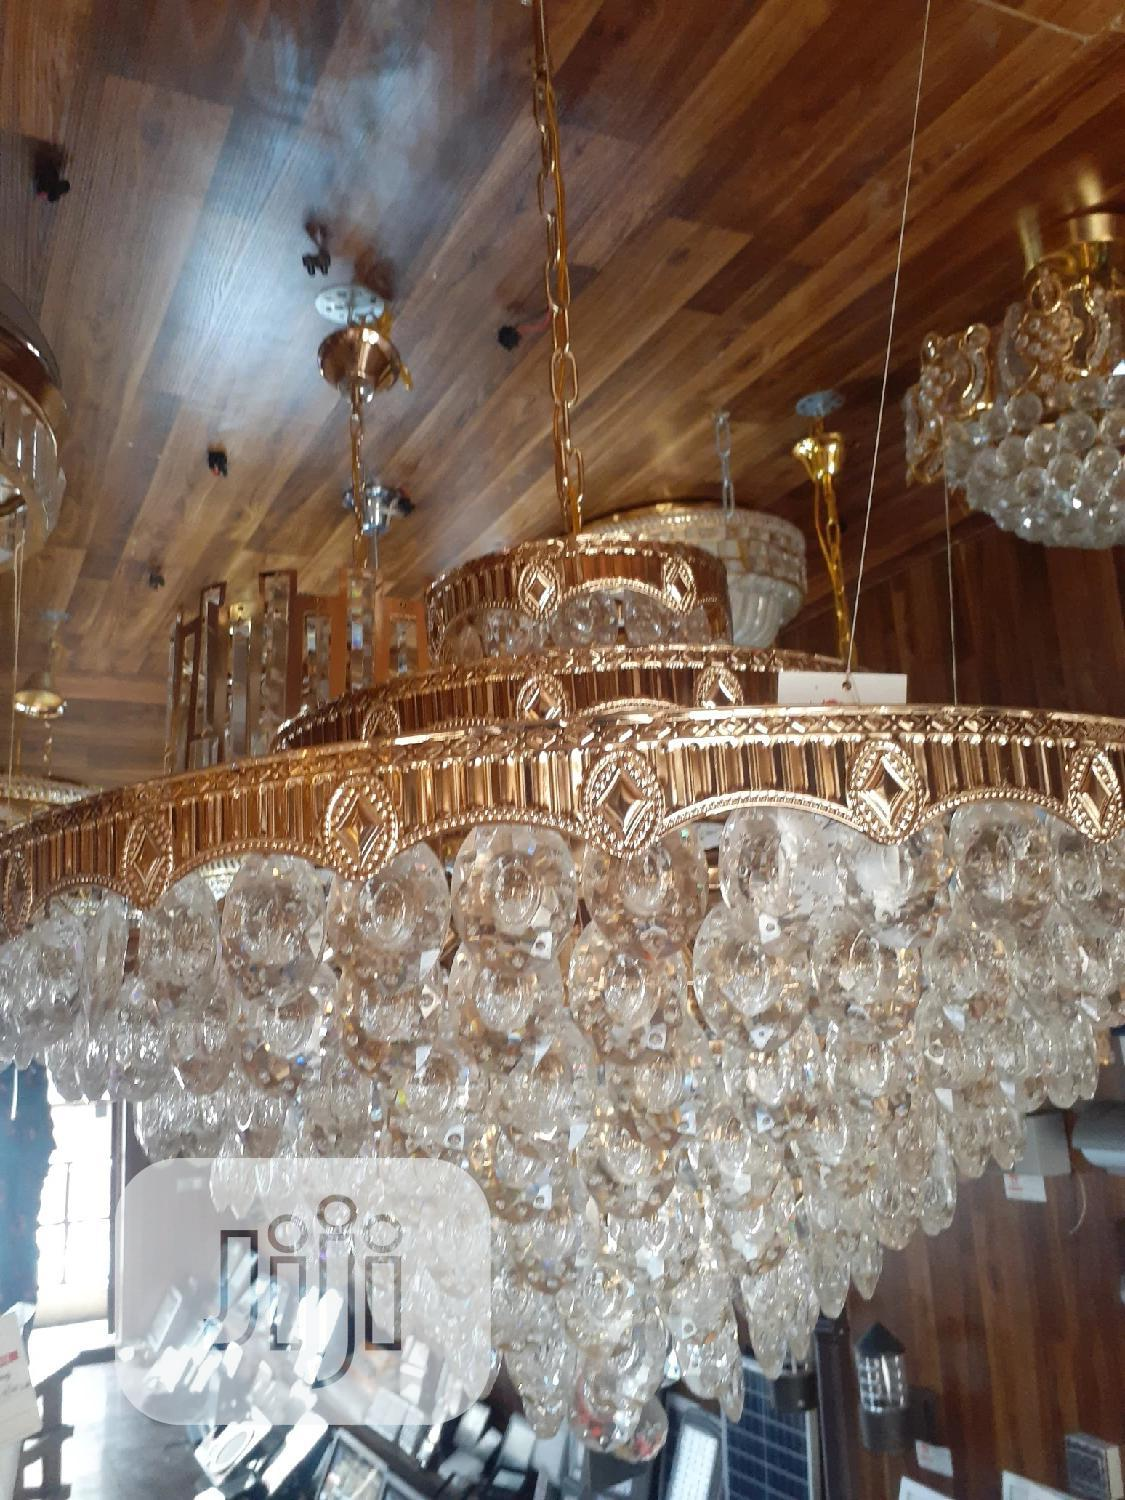 Chandelier Crystals Bulb And Let 4ft   Home Accessories for sale in Ojo, Lagos State, Nigeria